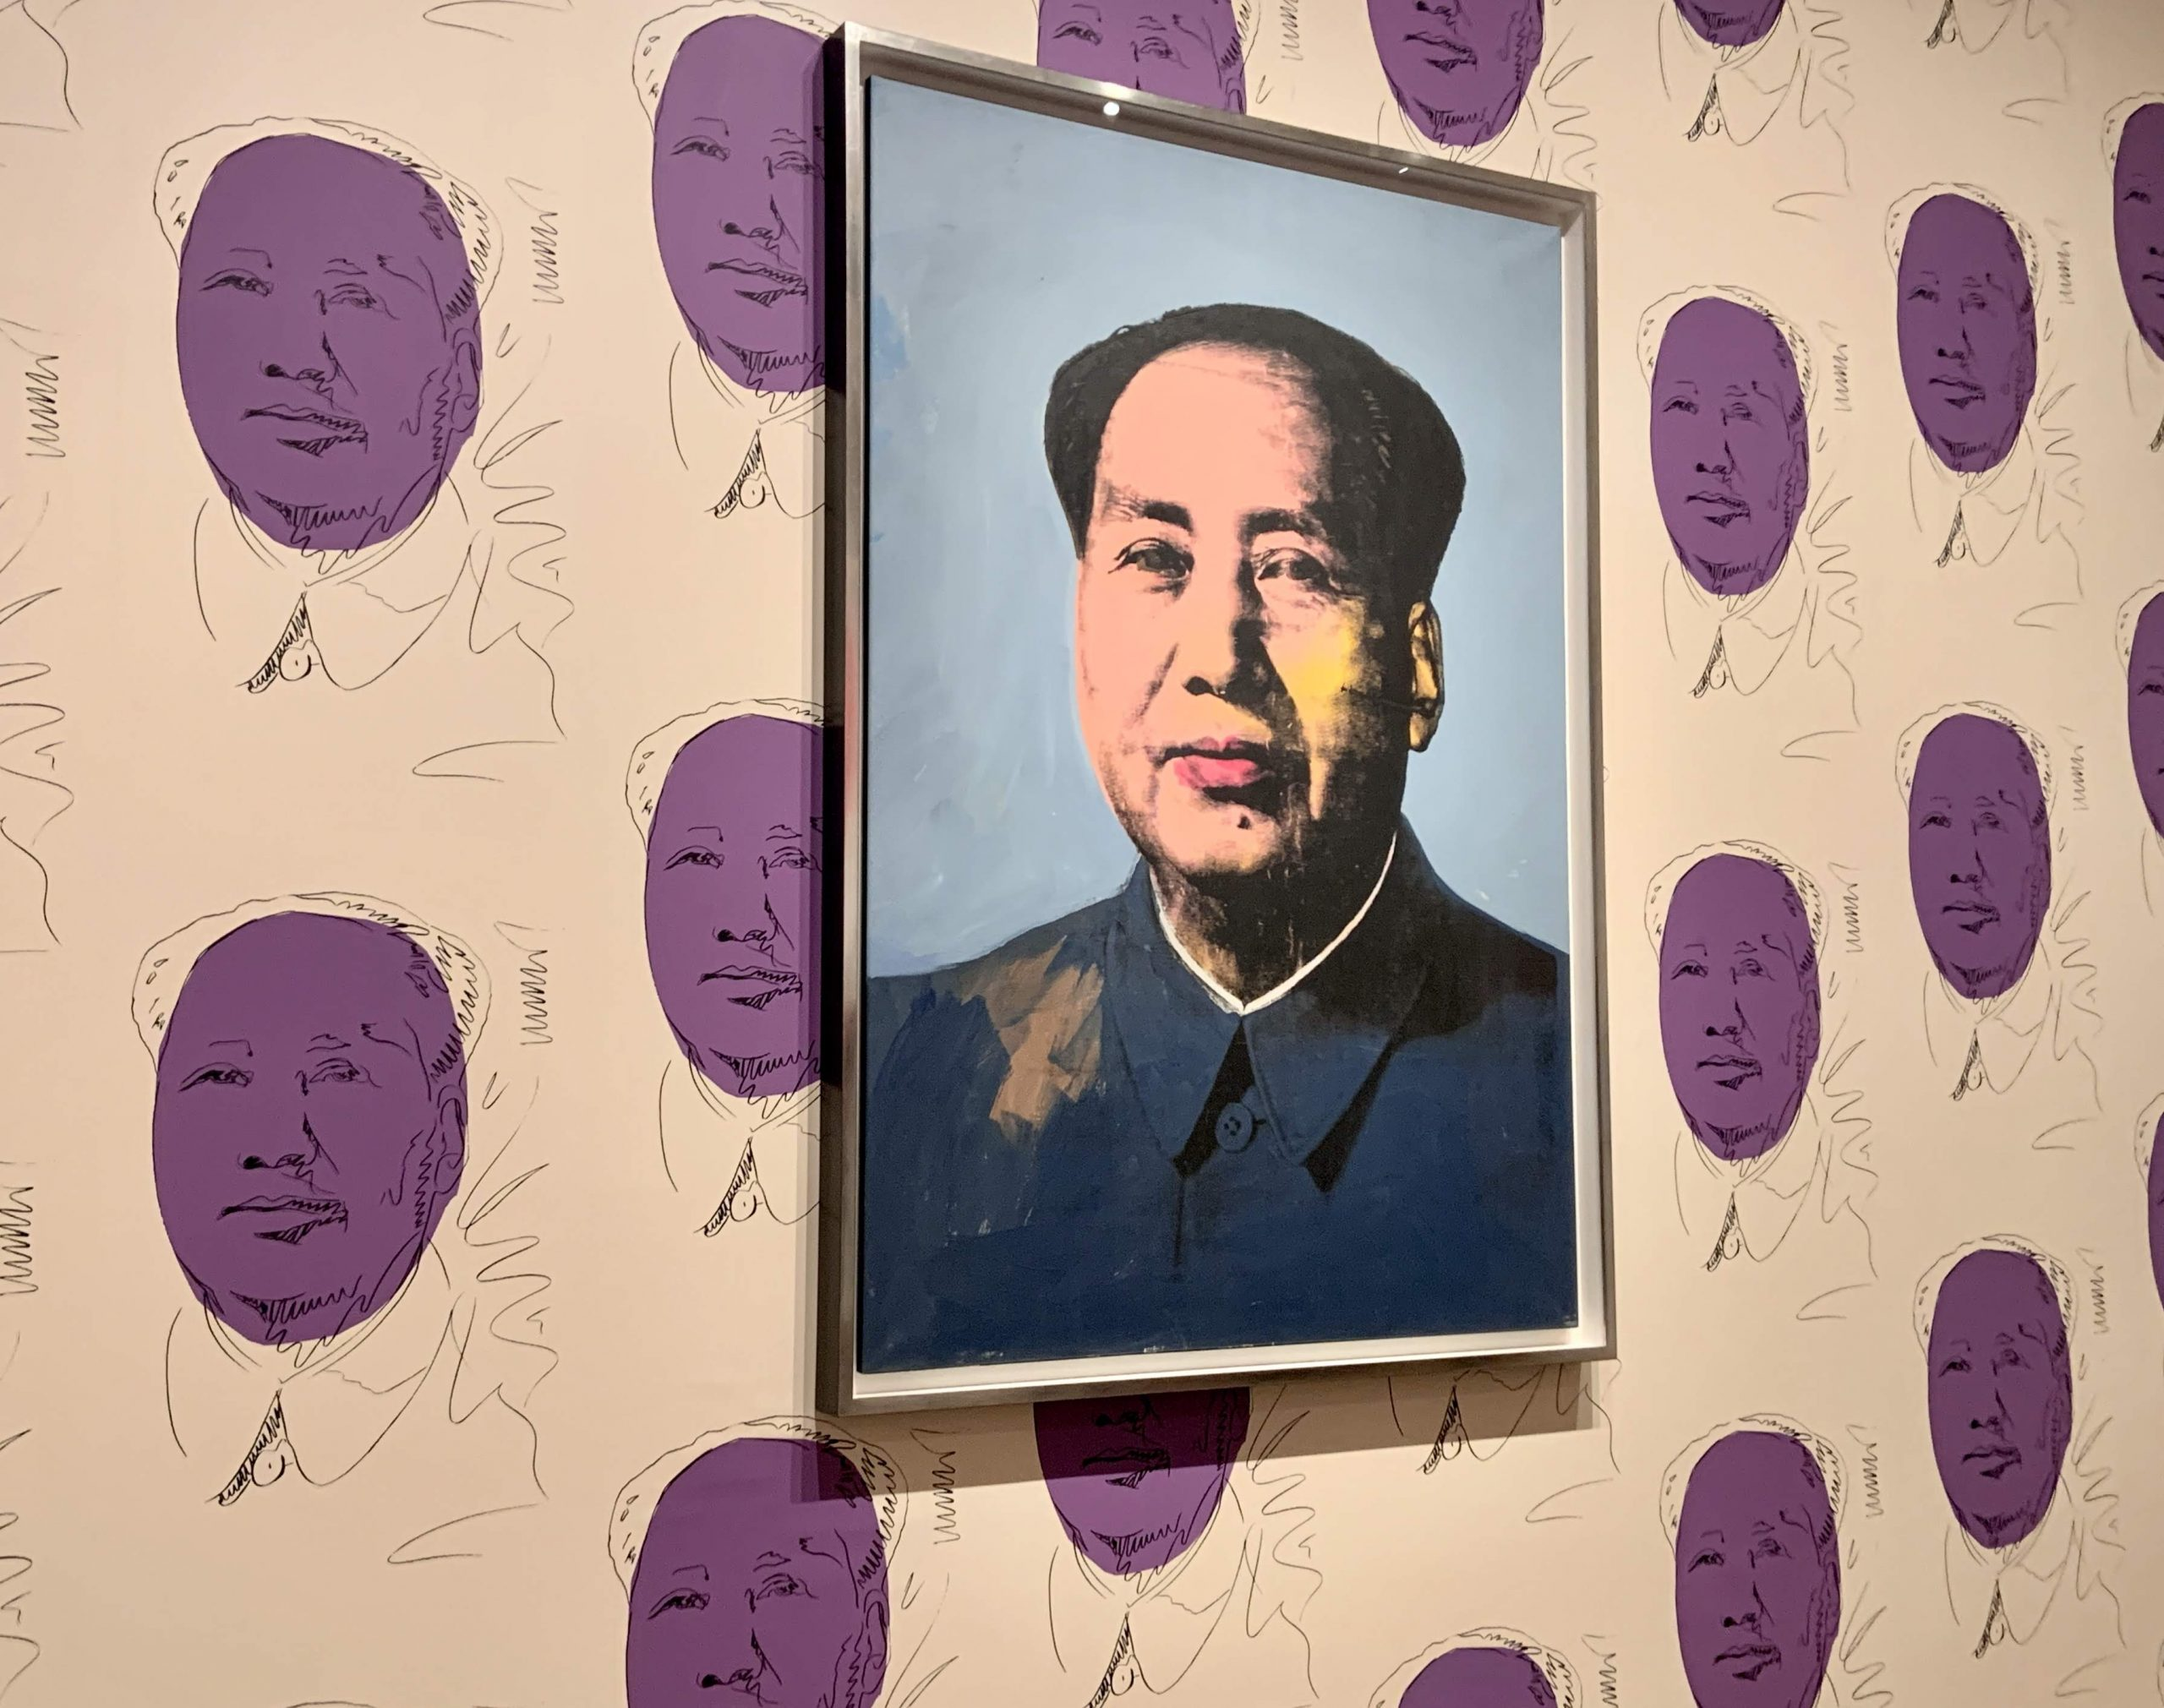 Andy Warhol - Mao (1972)